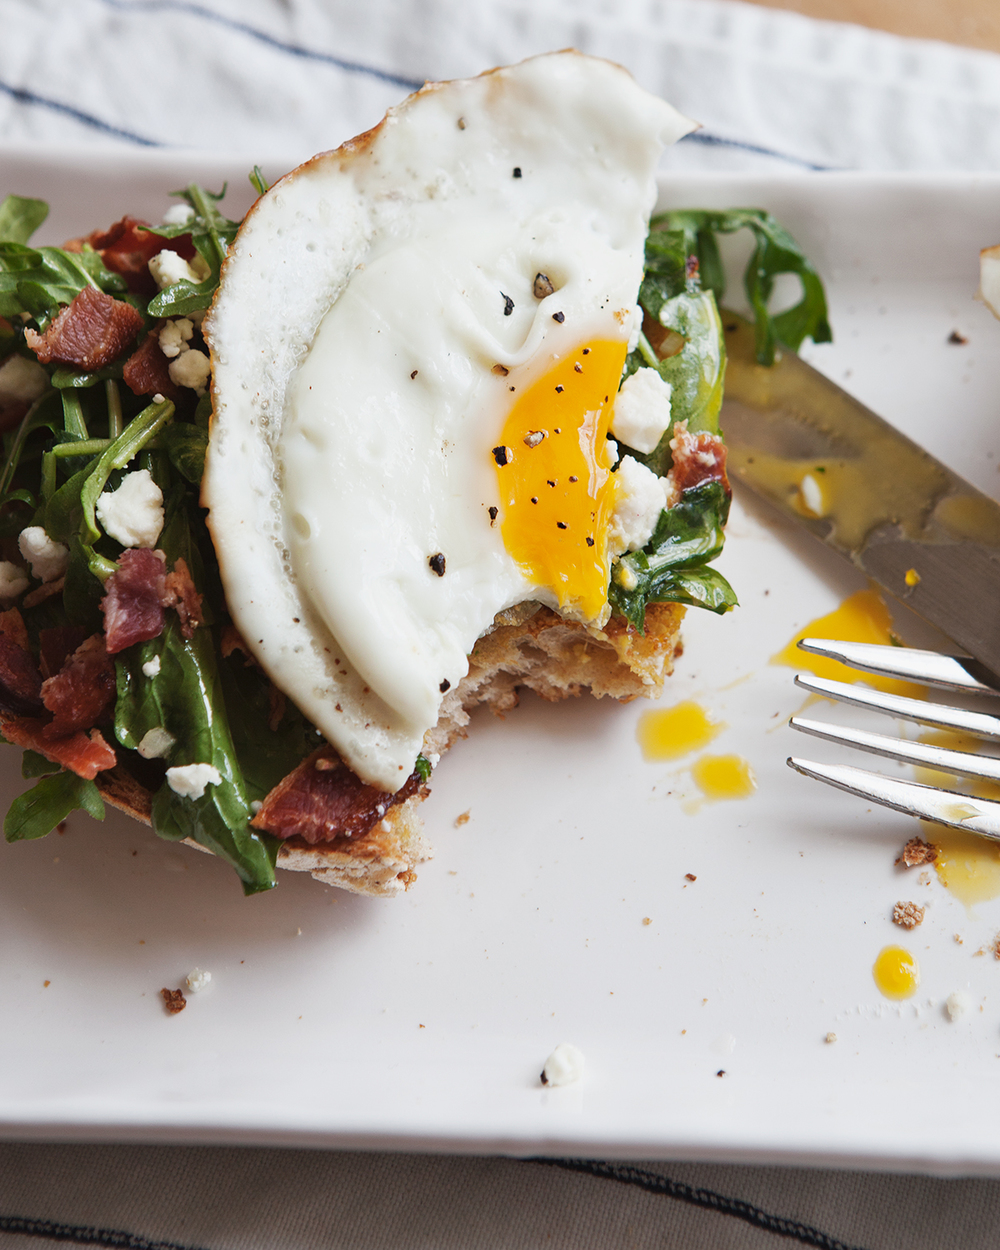 arugula-tartine-with-bacon-feta-and-taragon-vinaigrette_jg_president-cheese_0019.jpg